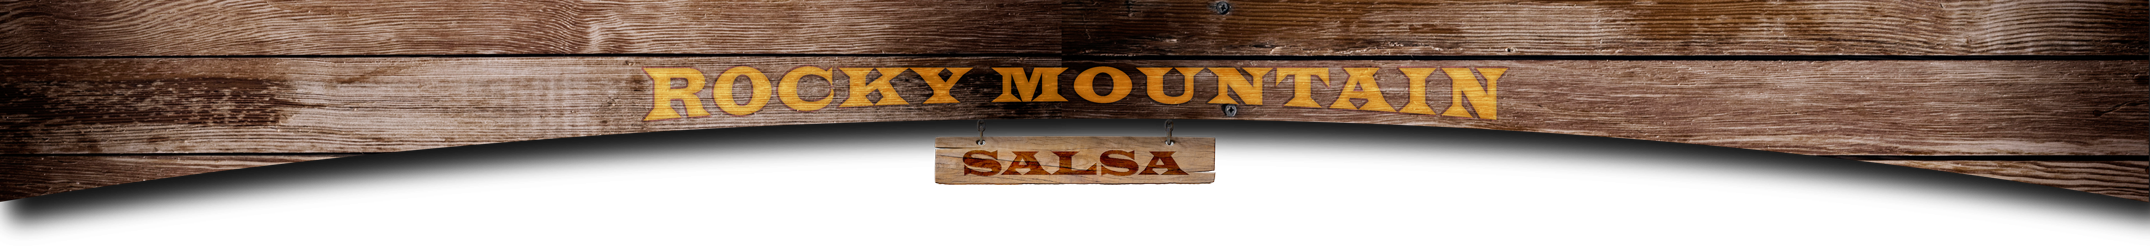 Rocky Mountain Salsa website header